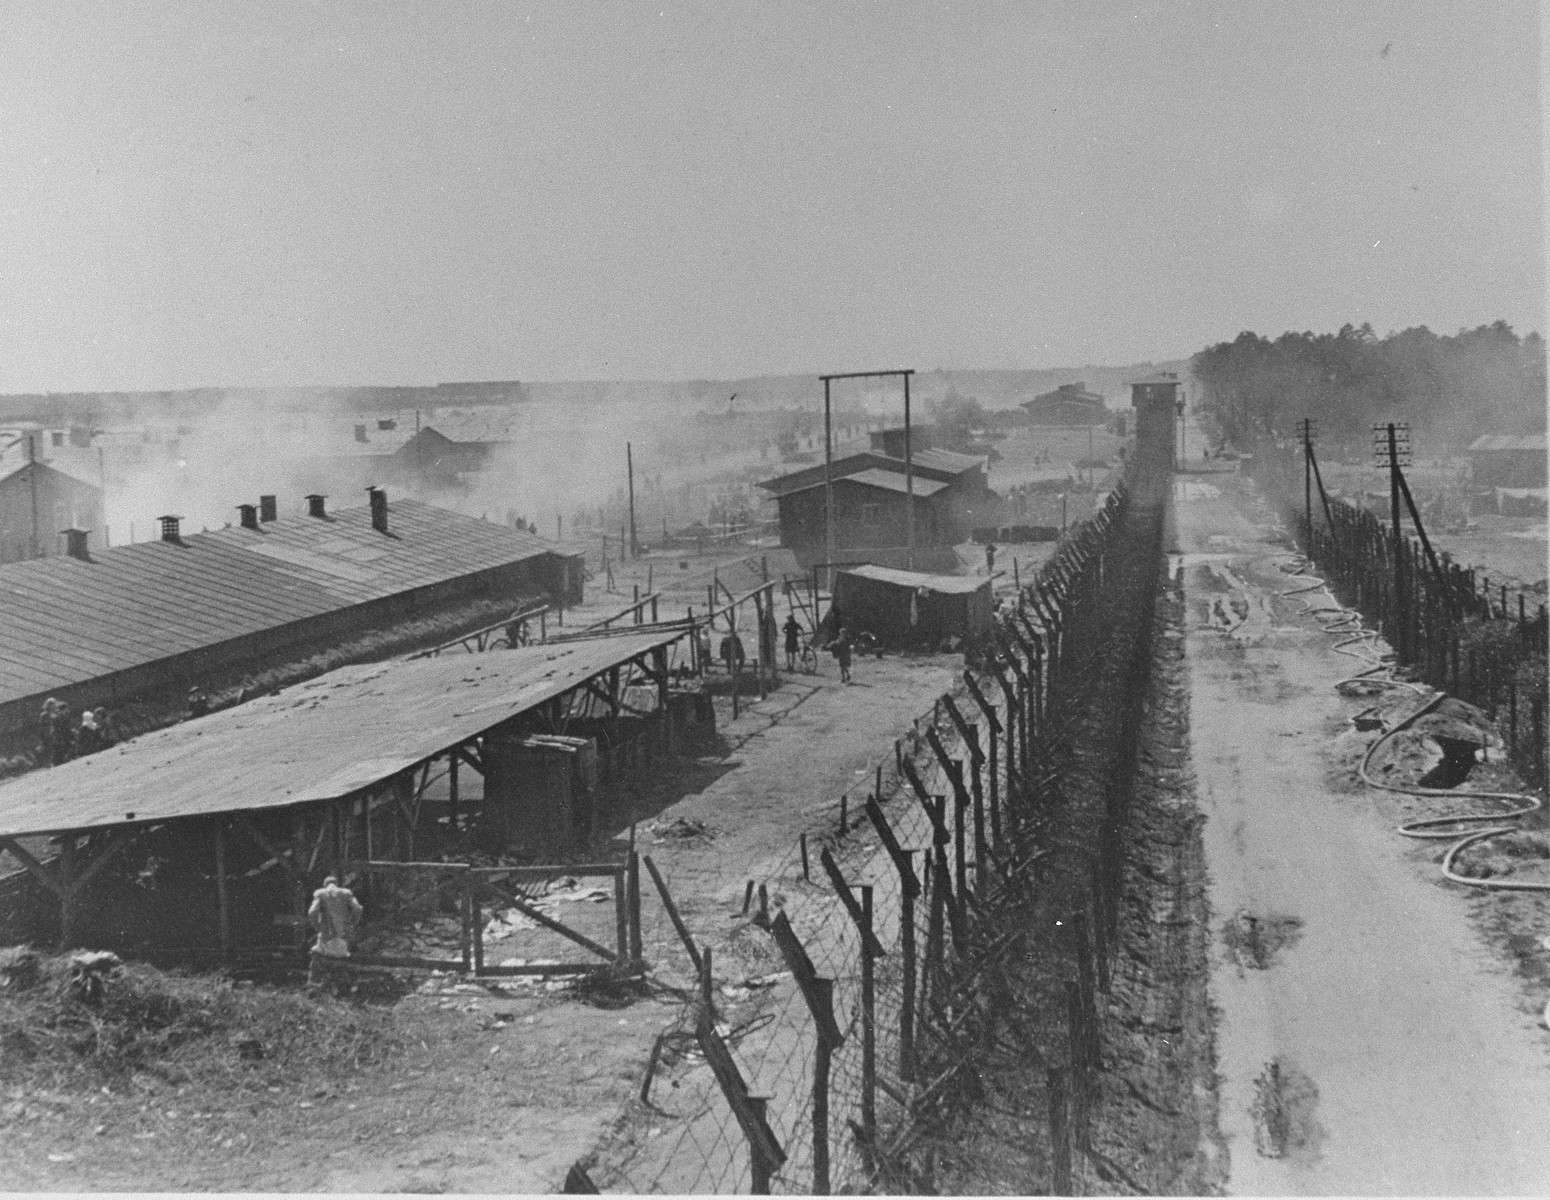 A section of Bergen-Belsen concentration camp.